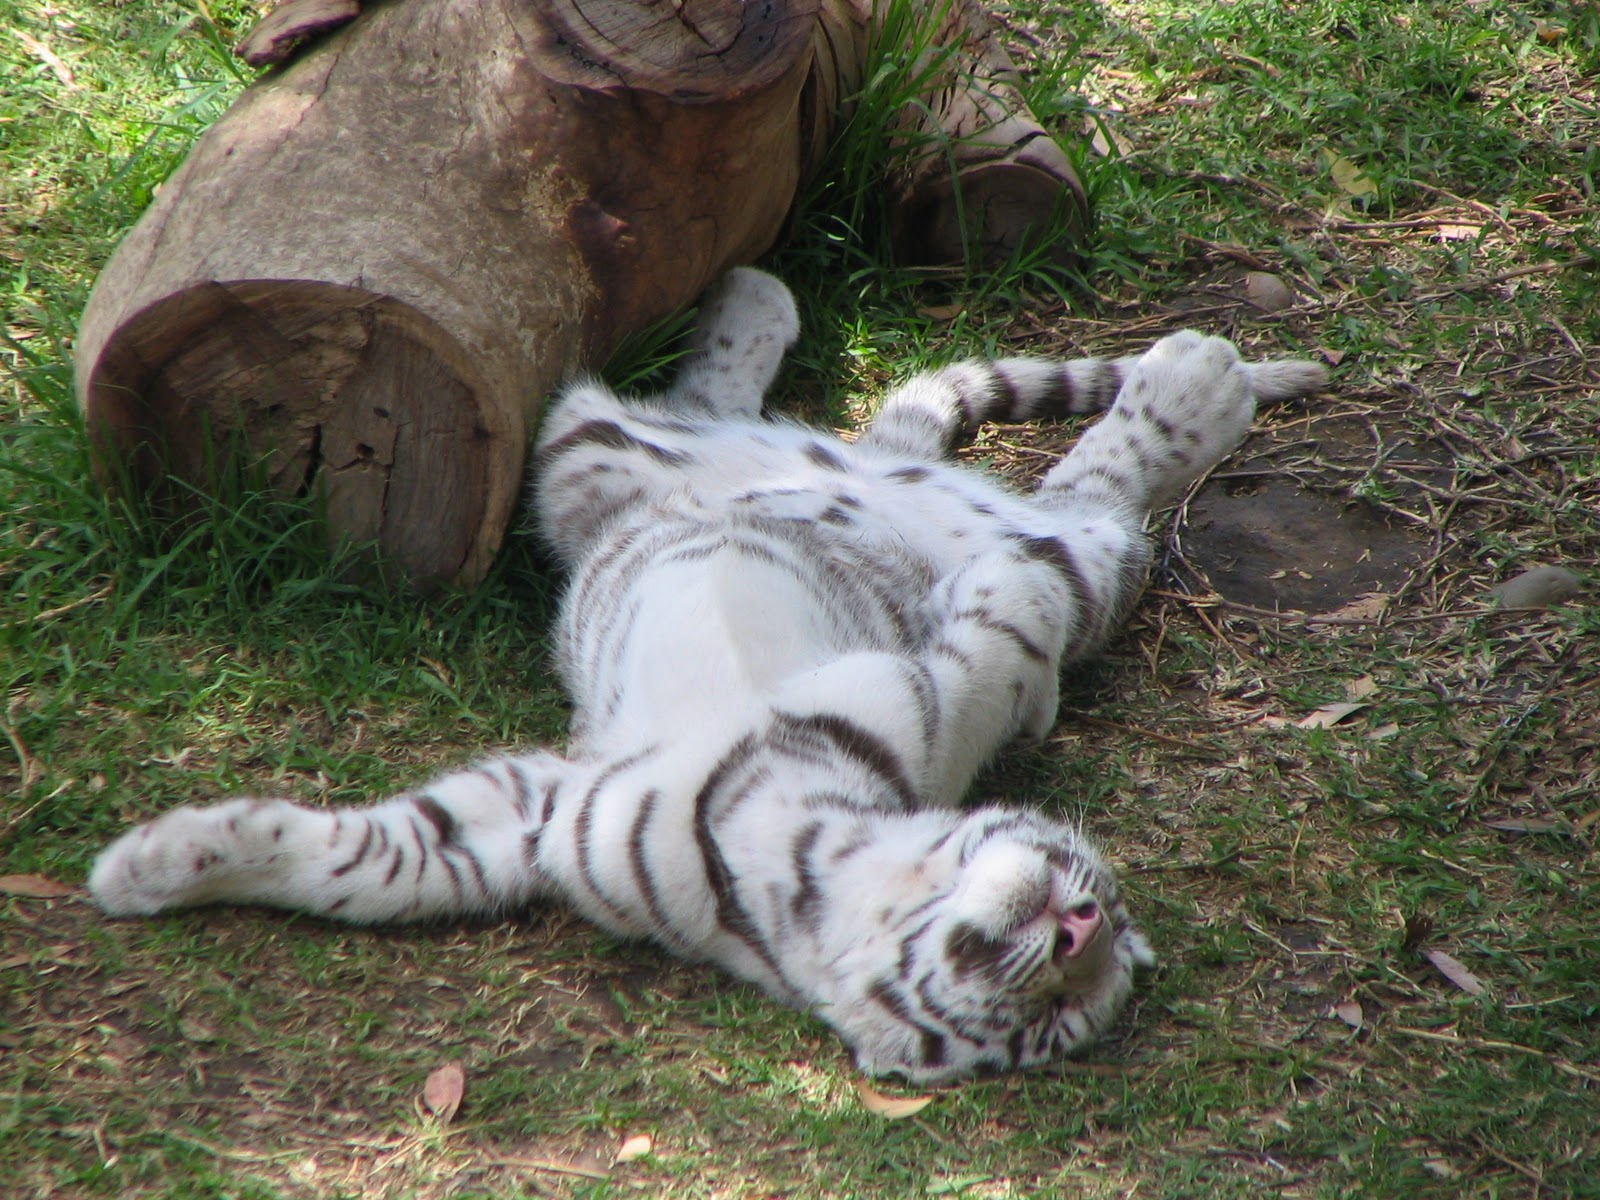 TIGER WALLPAPERS White Tiger Cub Wallpapers 1600x1200